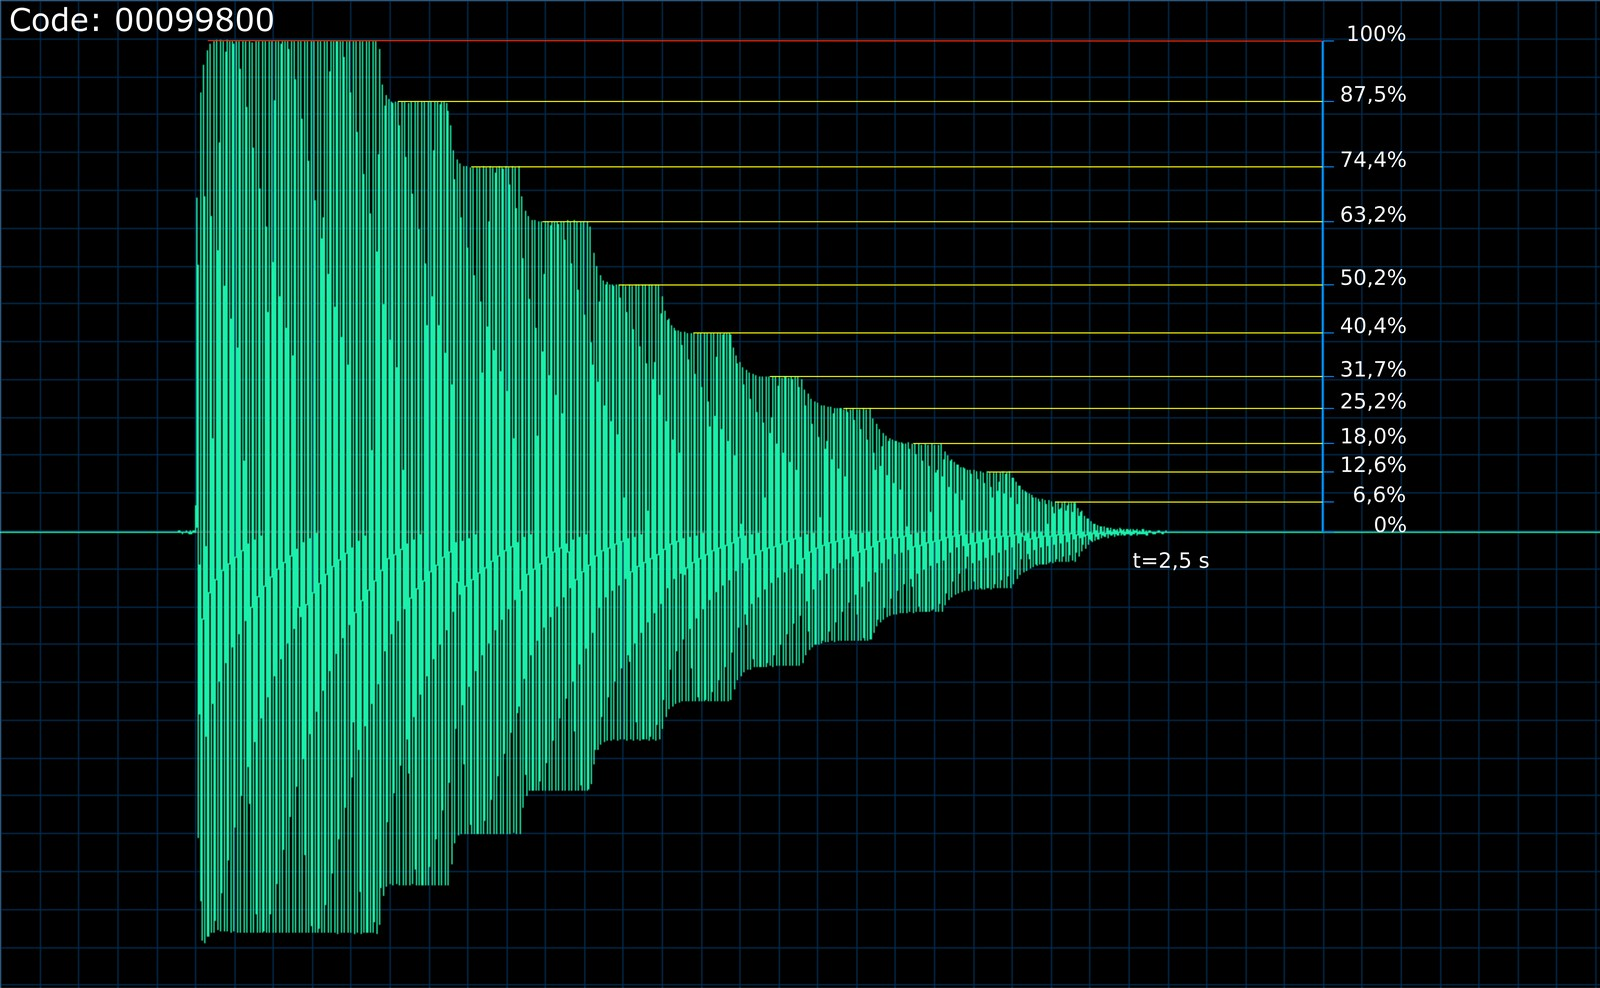 VL1 ADSR levels - waveform figure